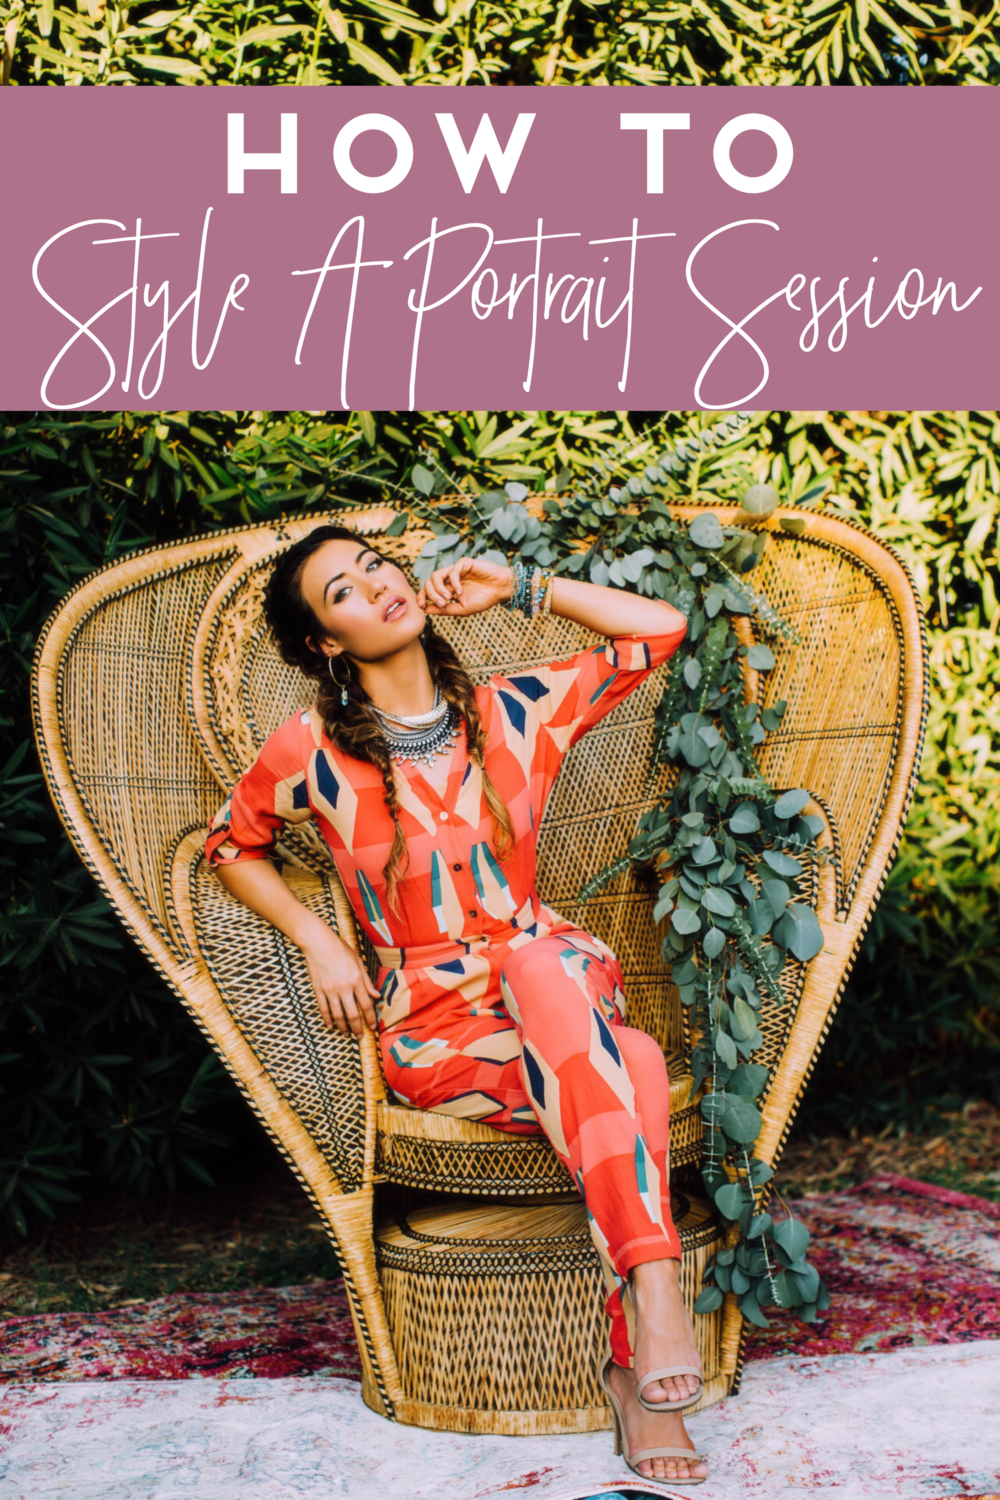 How To Design A Styled Portrait Session Tremaine Ranch Arizona Wedding Event Vintage Furniture Tableware Rentals